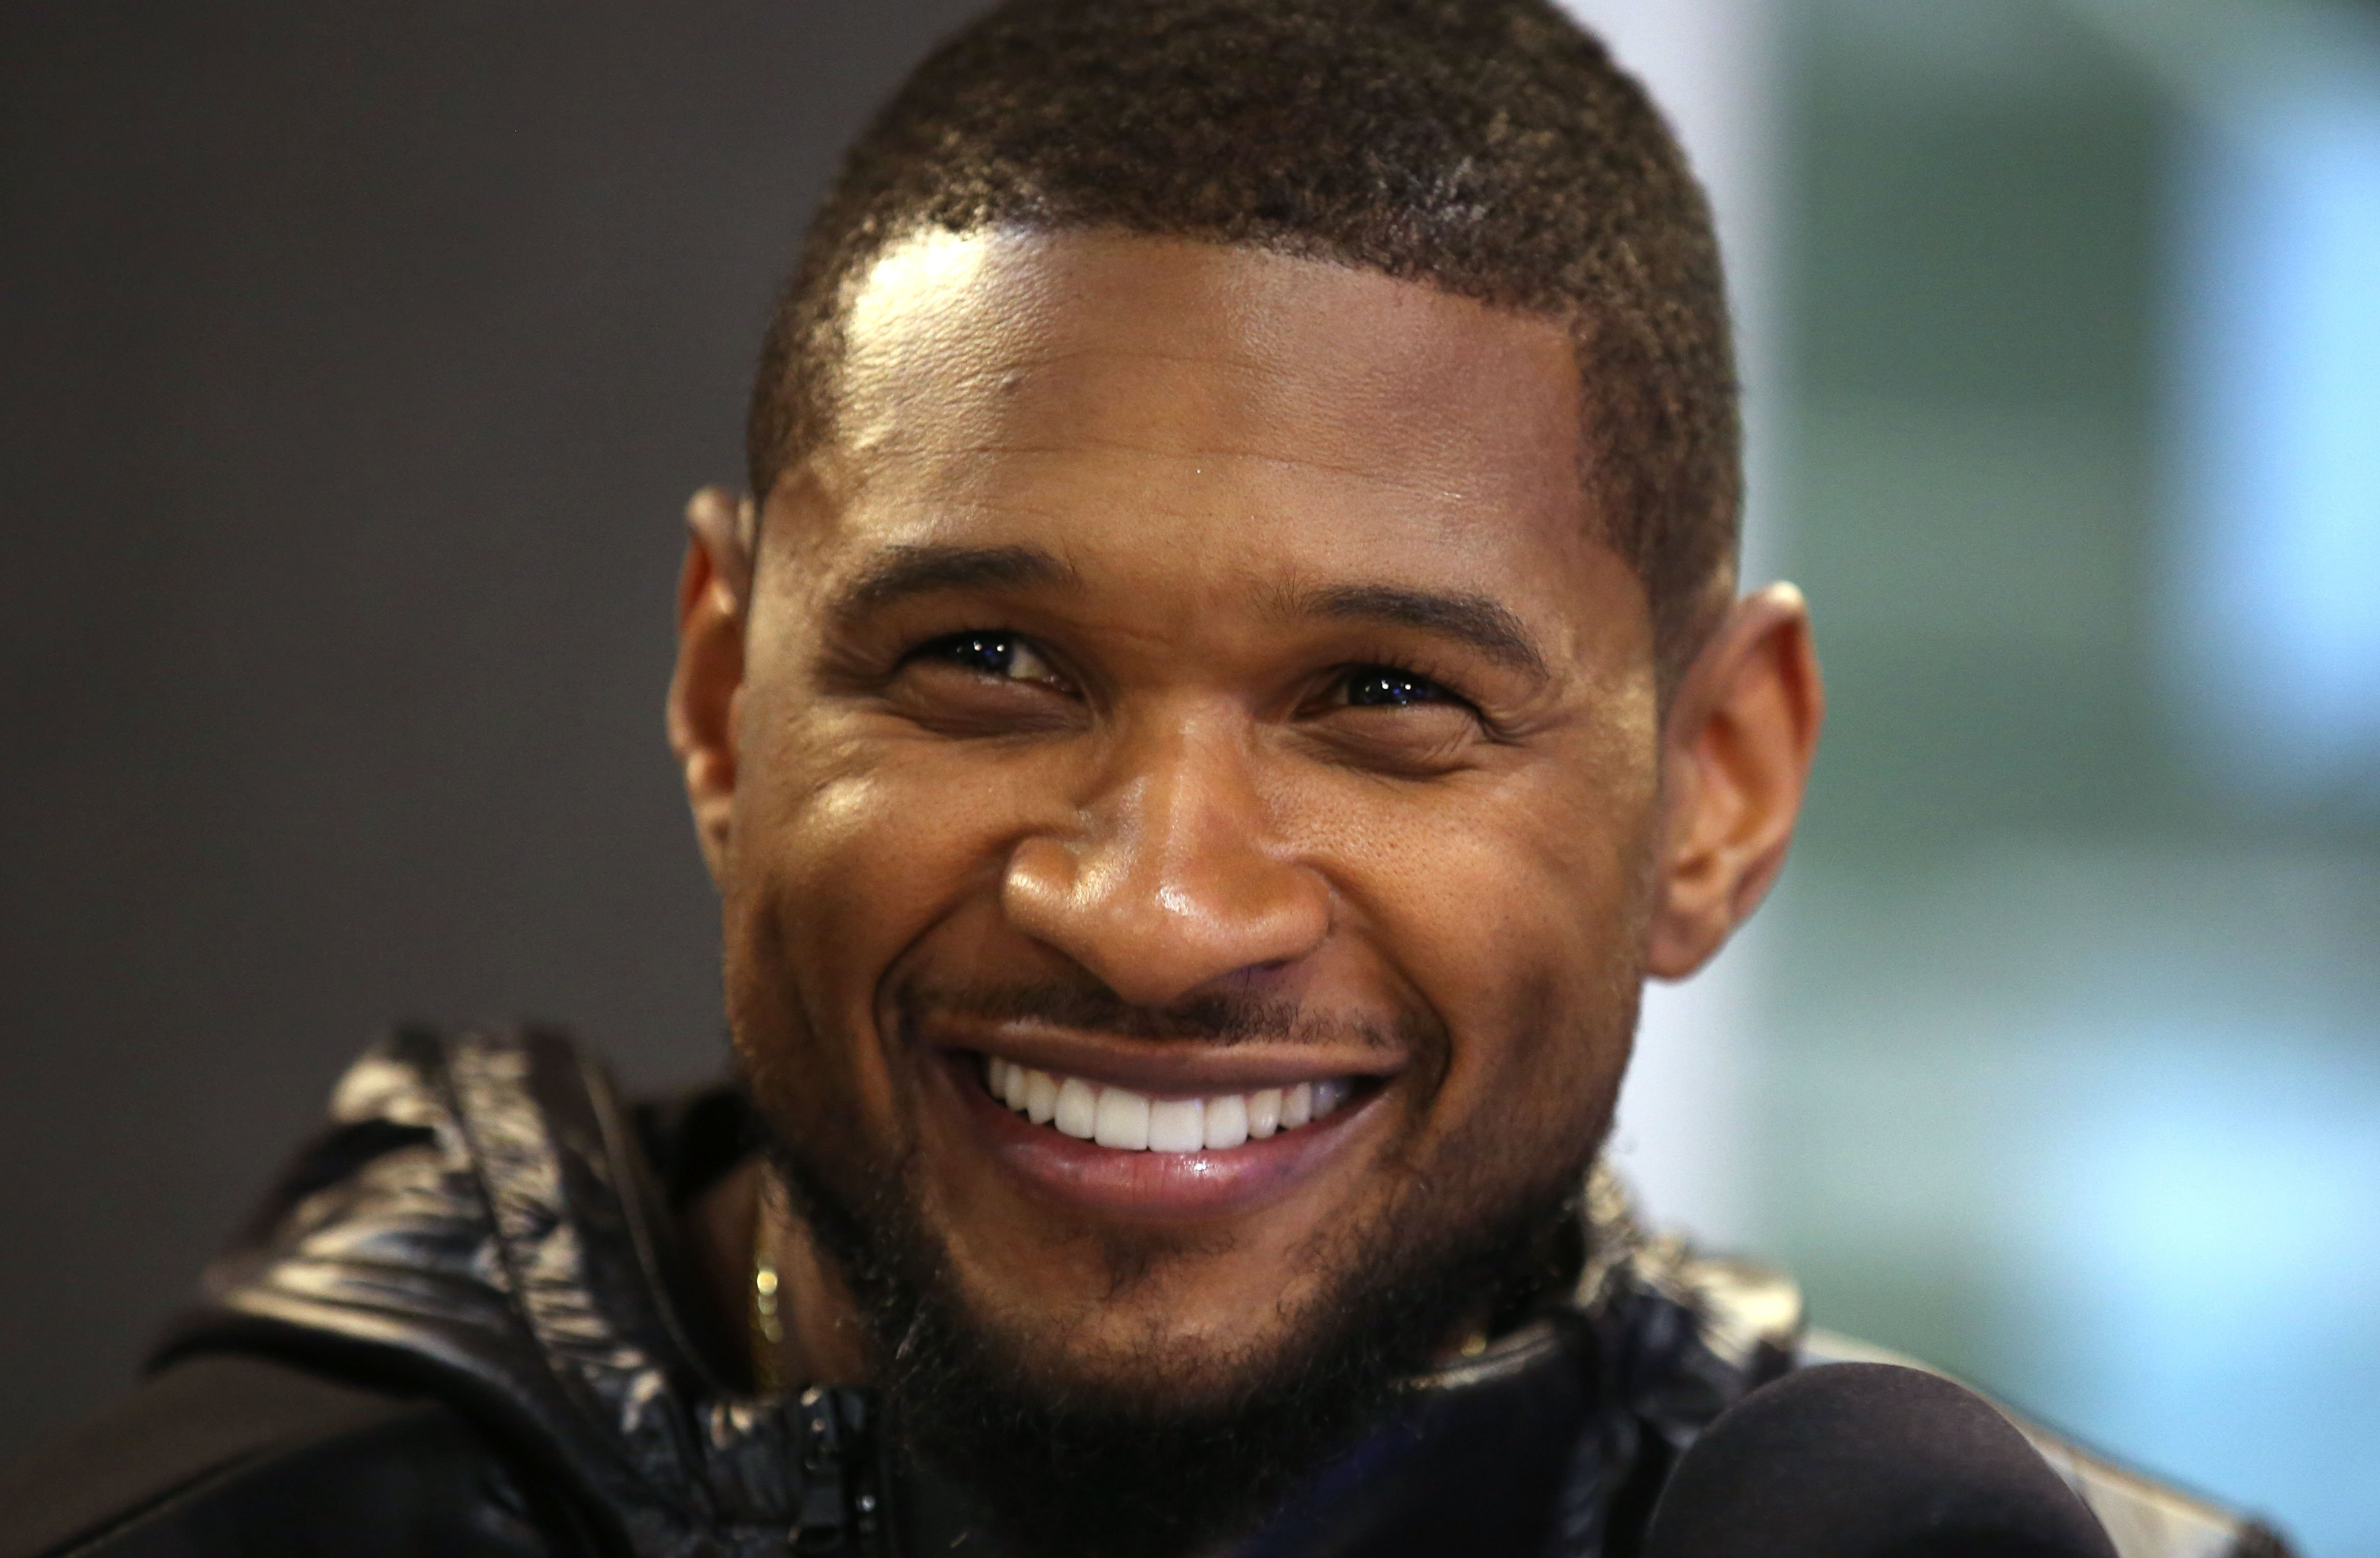 Usher visits the Kiss FM Studios in London, England on December 17, 2014. | Photo: Getty Images